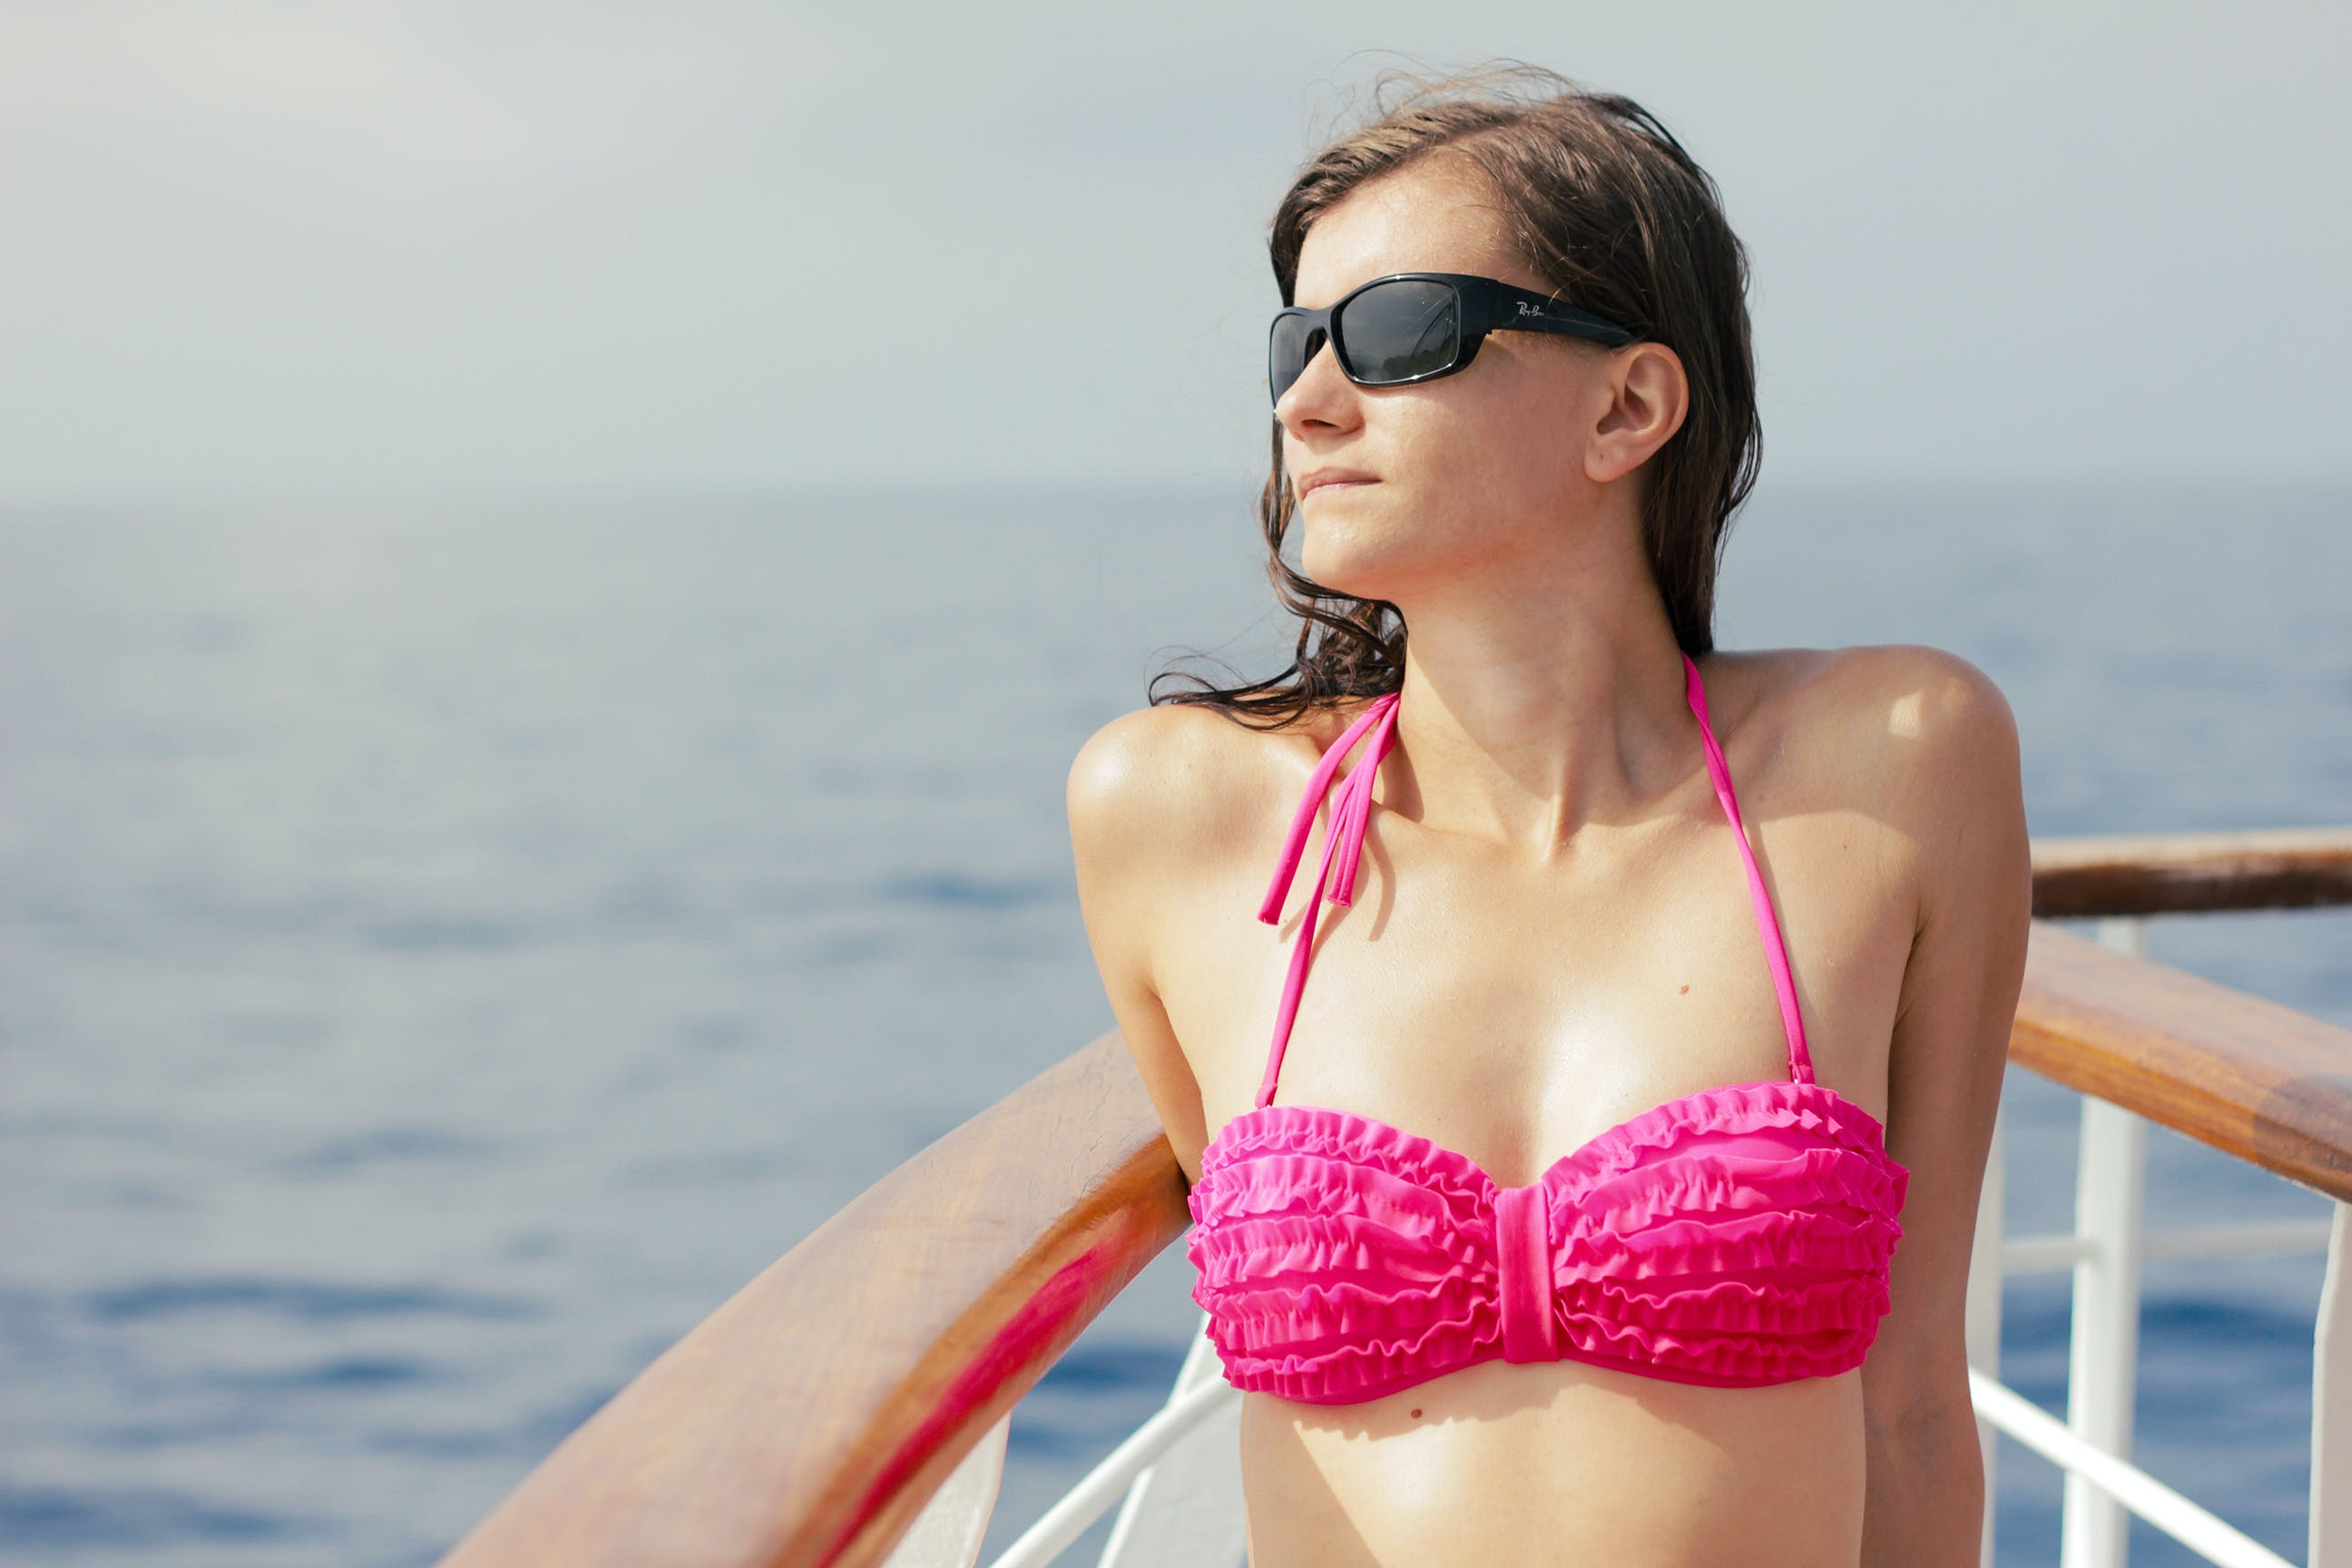 Free stock photo of sea, person, sunglasses, bikini